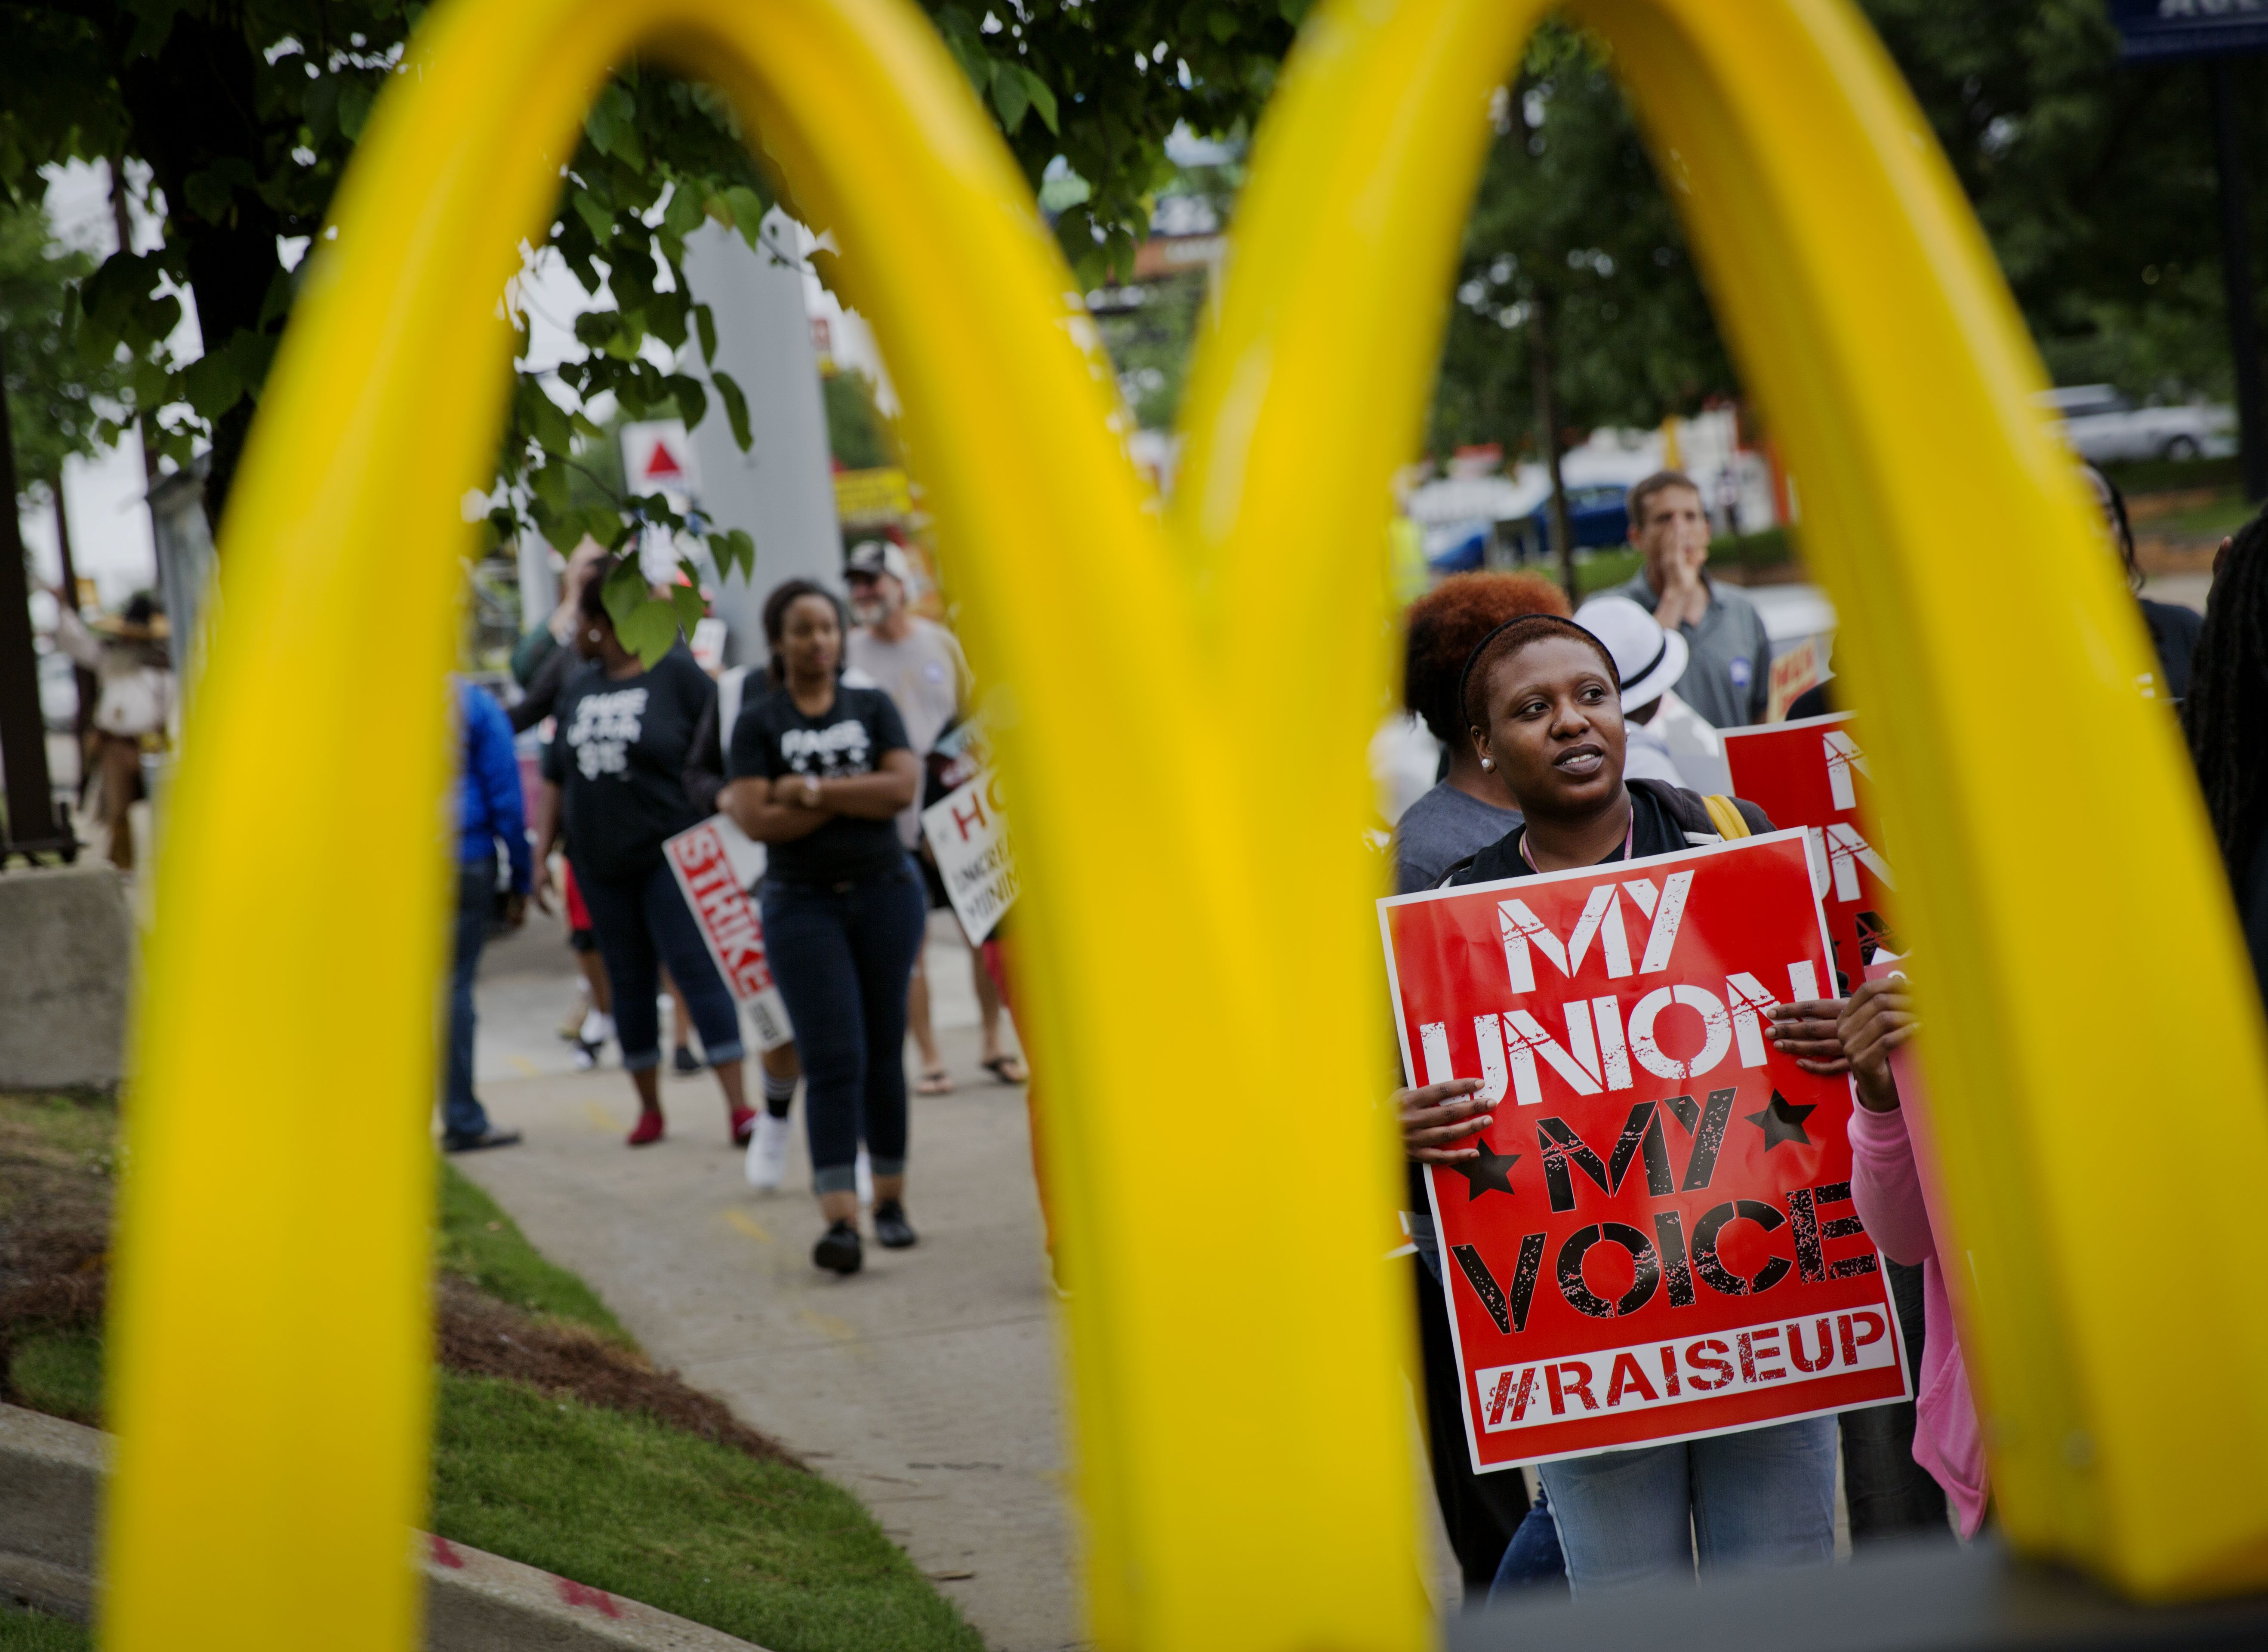 <b>Atlanta:</b> Burger King employee Brittany Buckhannon, 24, right, demonstrates during a protest for higher wages and worker's unions outside a McDonald's restaurant on May 15, 2014.